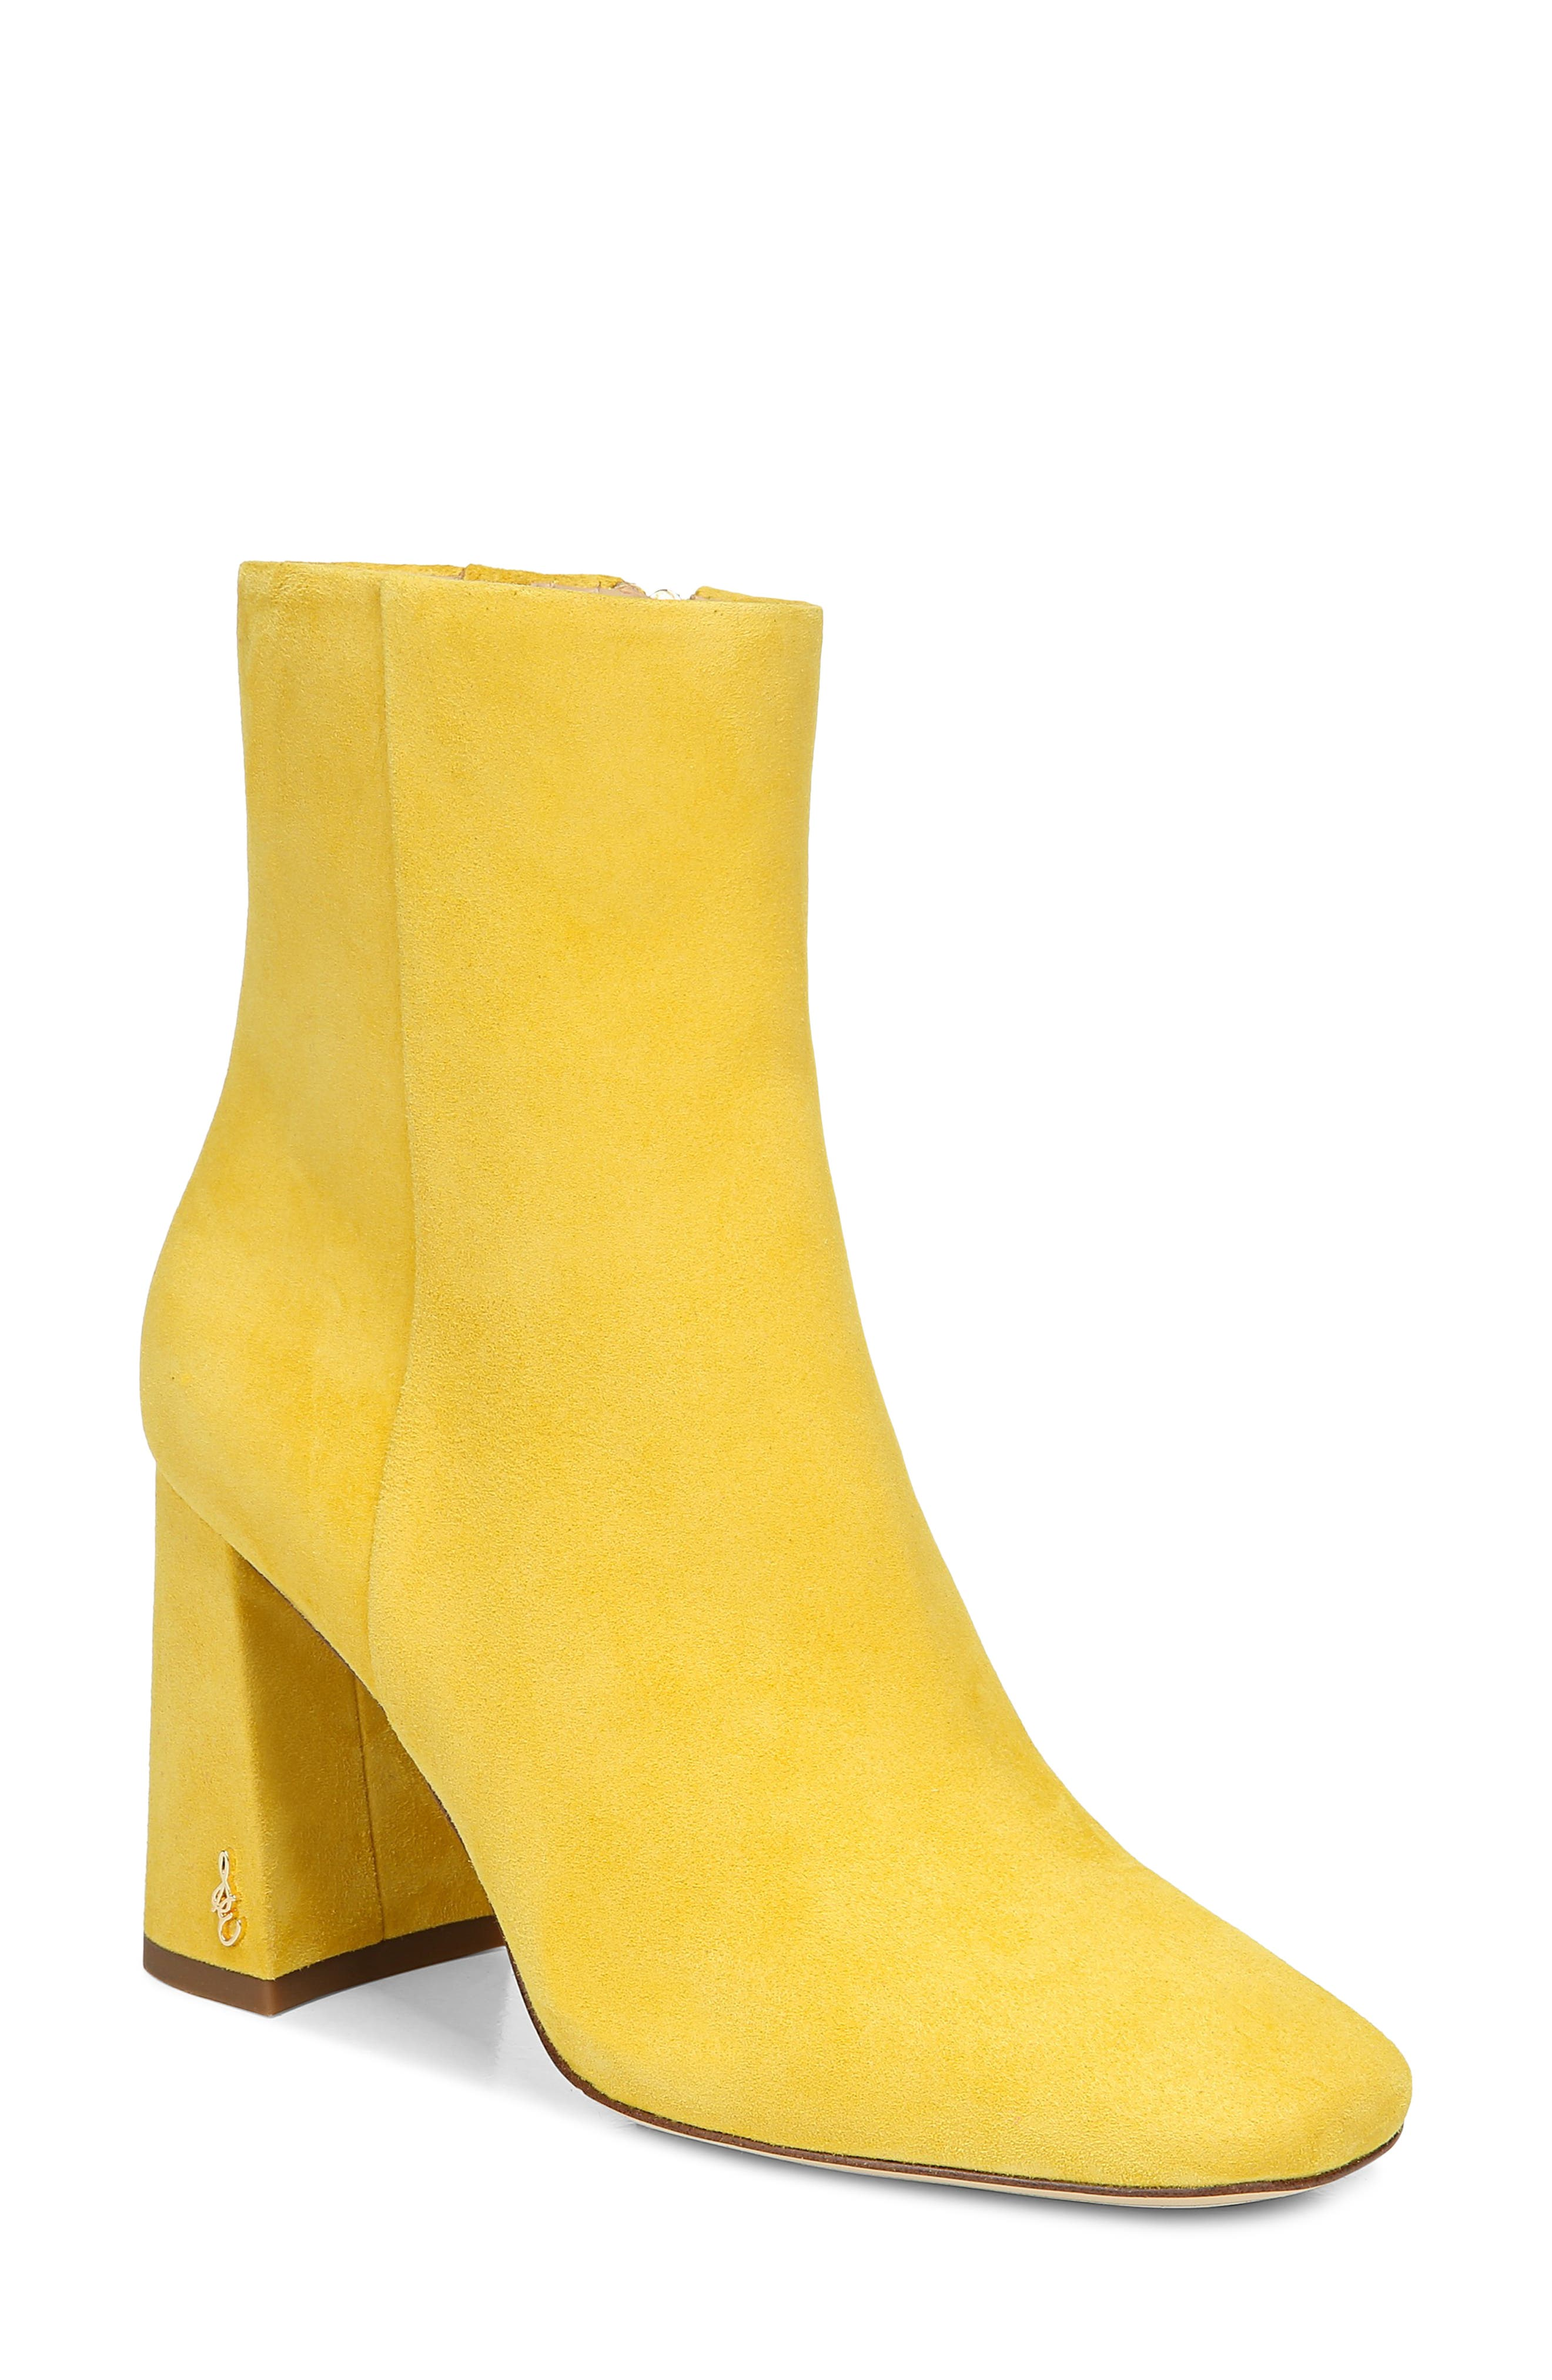 Women's Yellow Booties \u0026 Ankle Boots